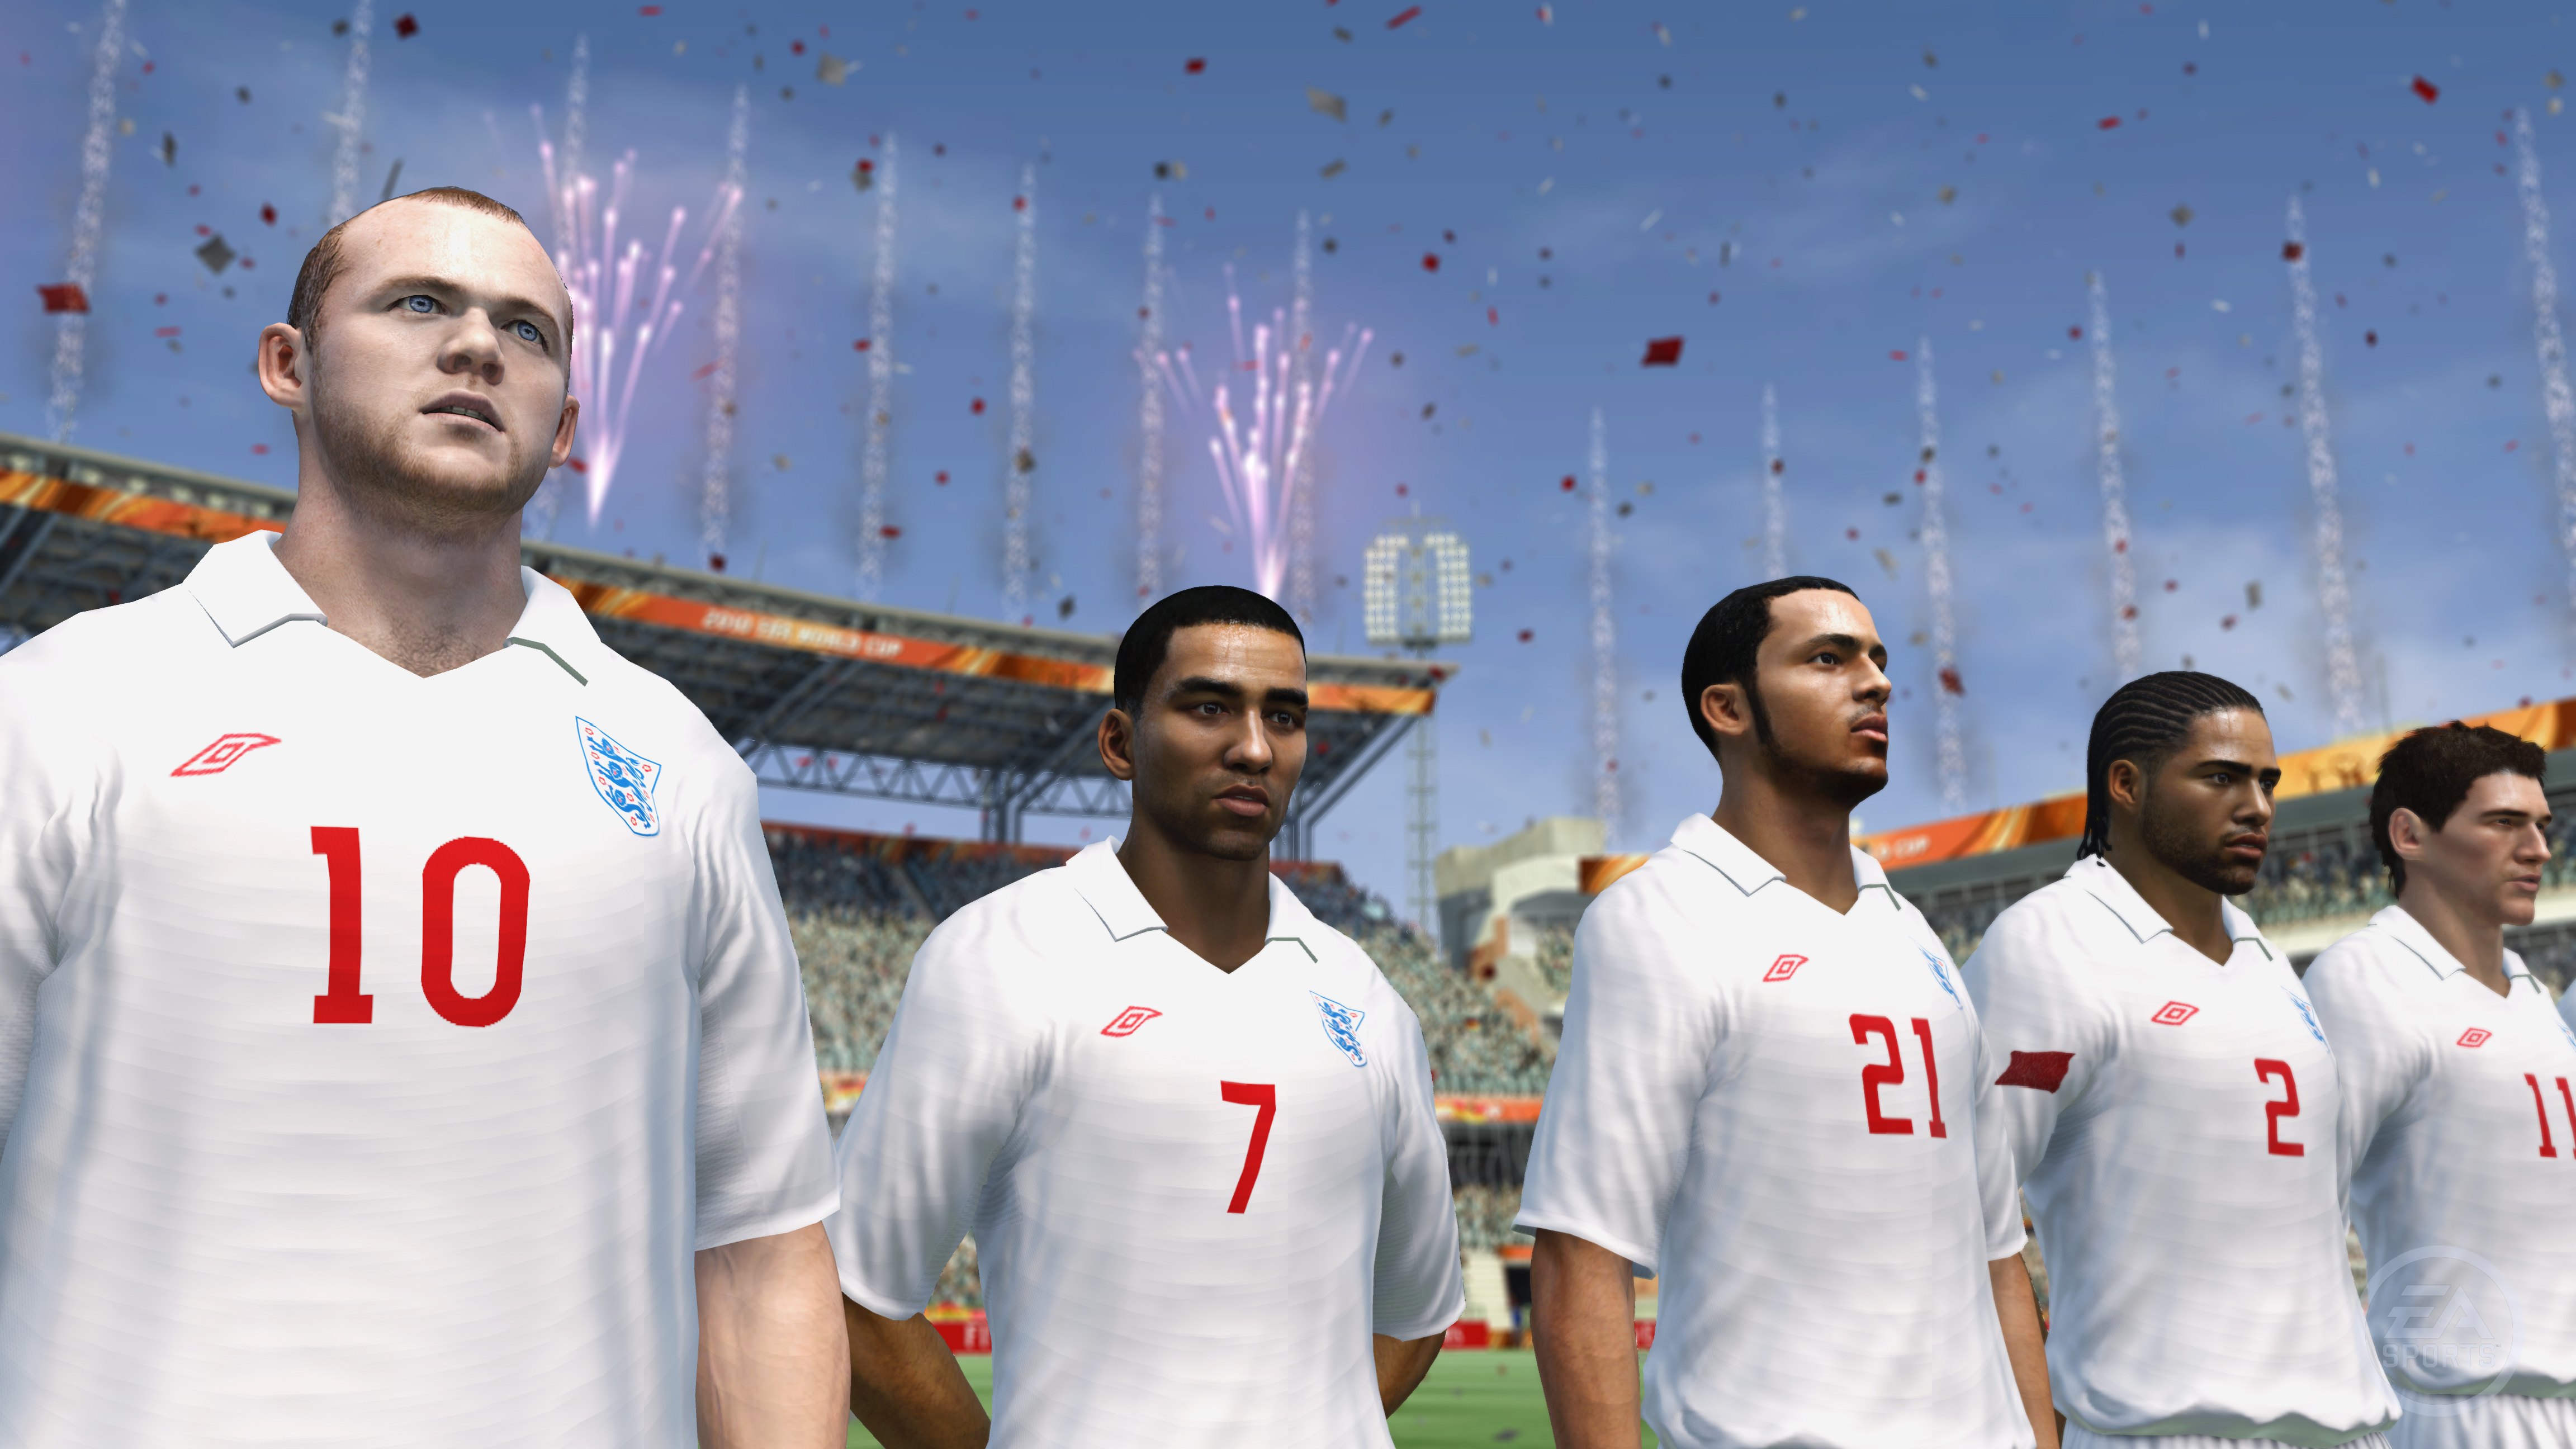 England fifa 2010 team collecting silverware trophy fifa 2018